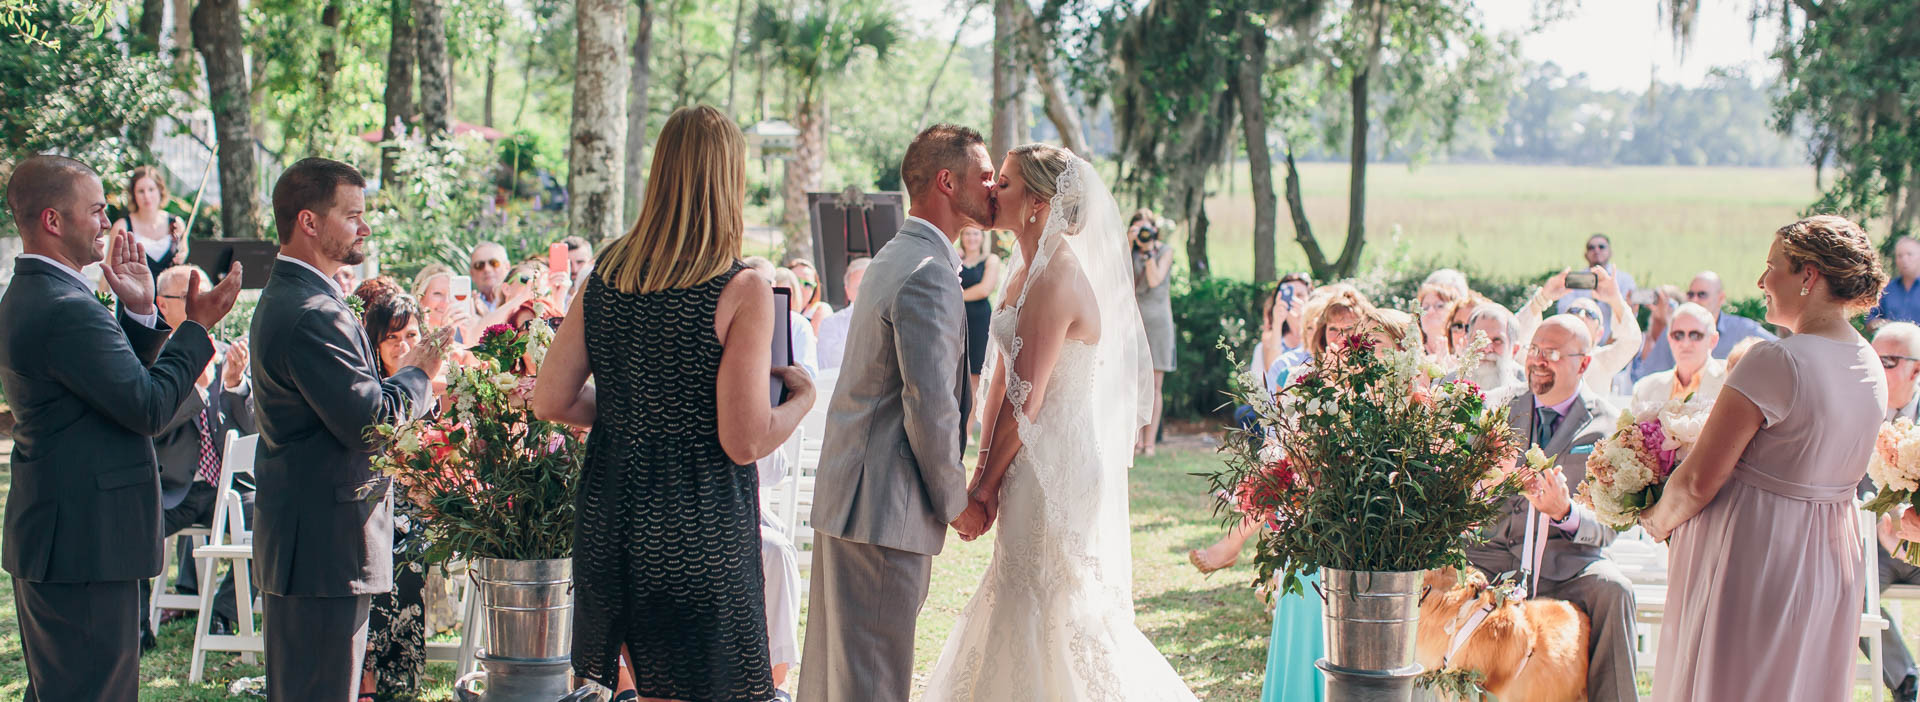 Ceremony at Creek Club at I'On